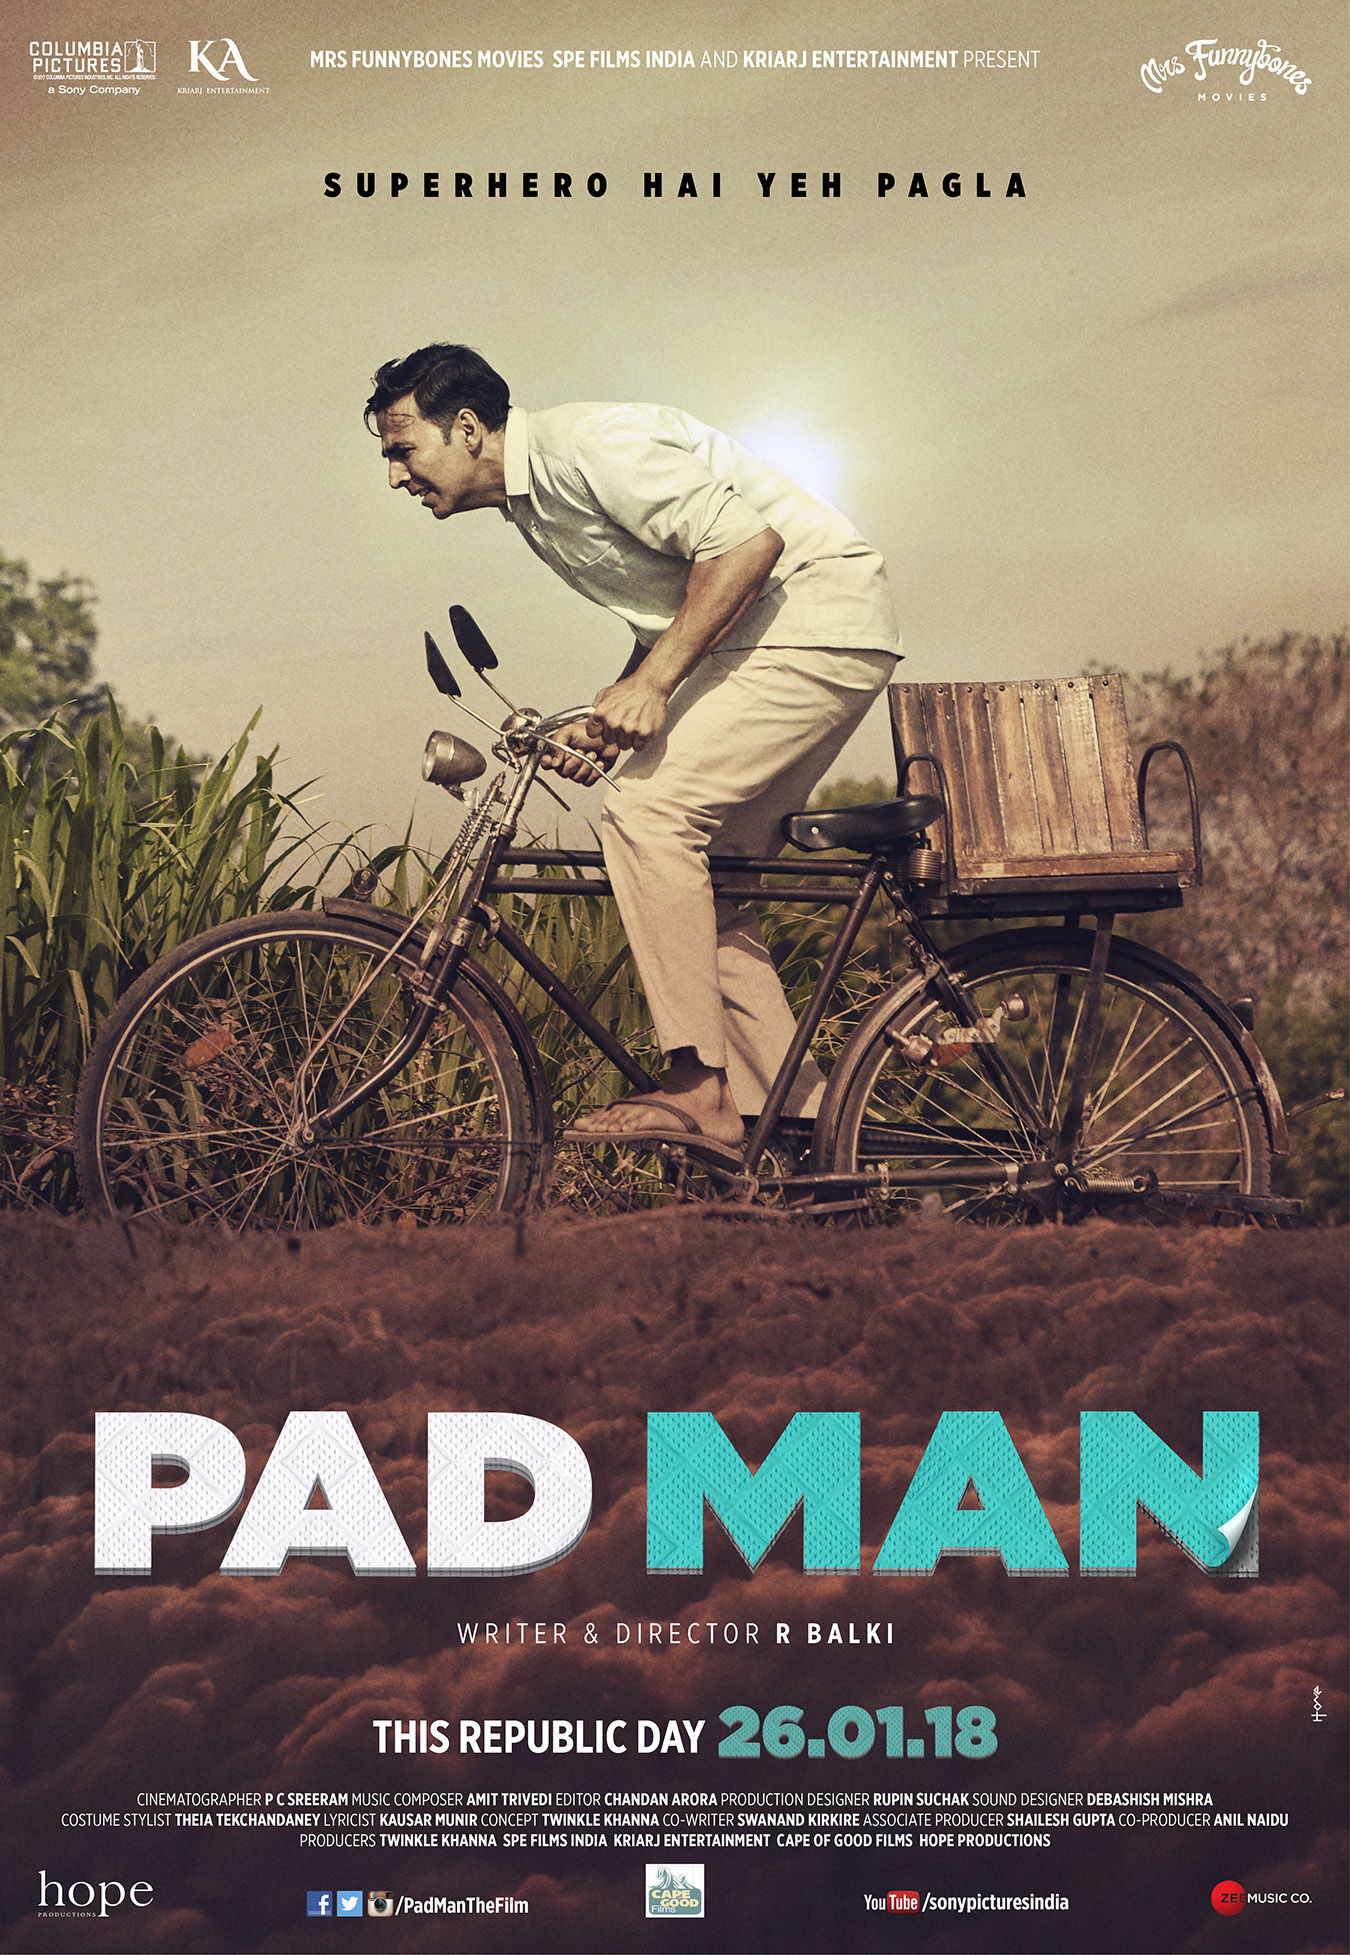 "NOT YOUR AVERAGE SUPERHERO FILM! HERE'S PRESENTING THE MOST PROGRESSIVE FAMILY ENTERTAINER ""PAD MAN"""